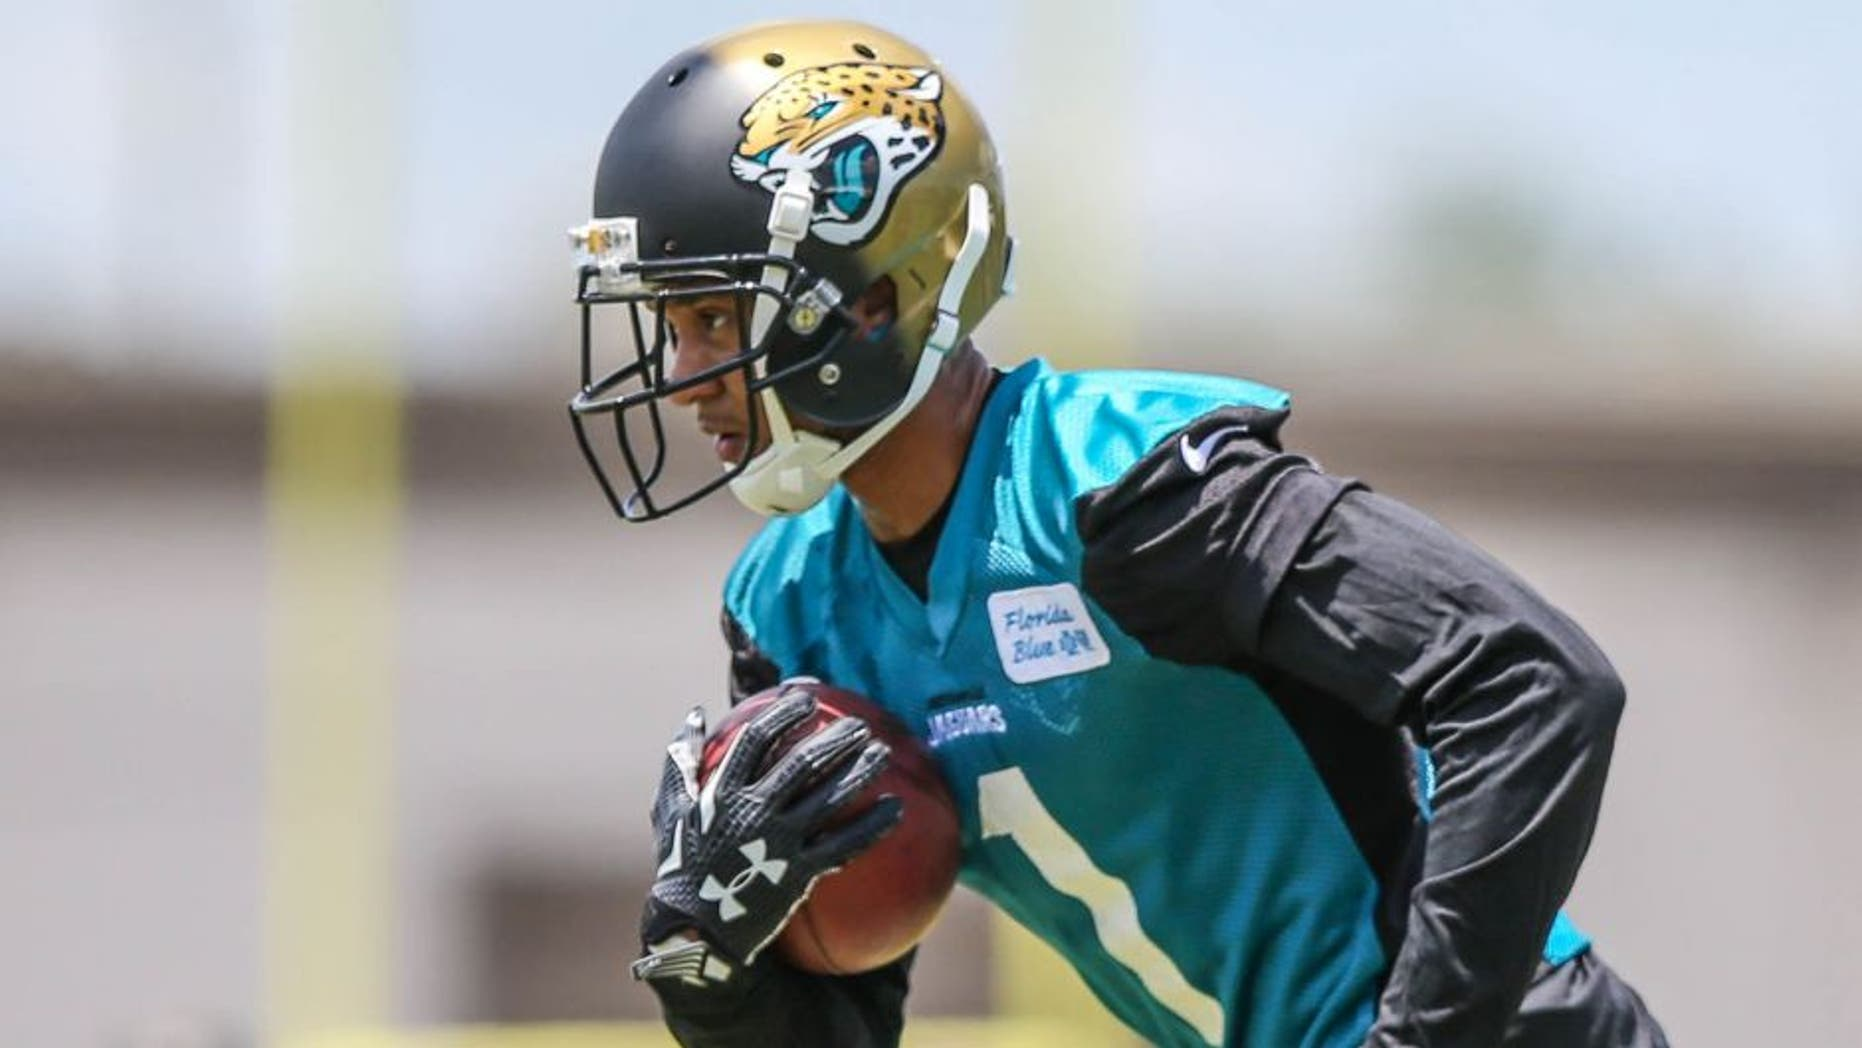 Jacksonville Jaguars wide receiver Rashad Greene (1) carries the ball during drills at NFL football rookie camp Saturday, May 9, 2015, in Jacksonville, Fla. (AP Photo/Gary McCullough)